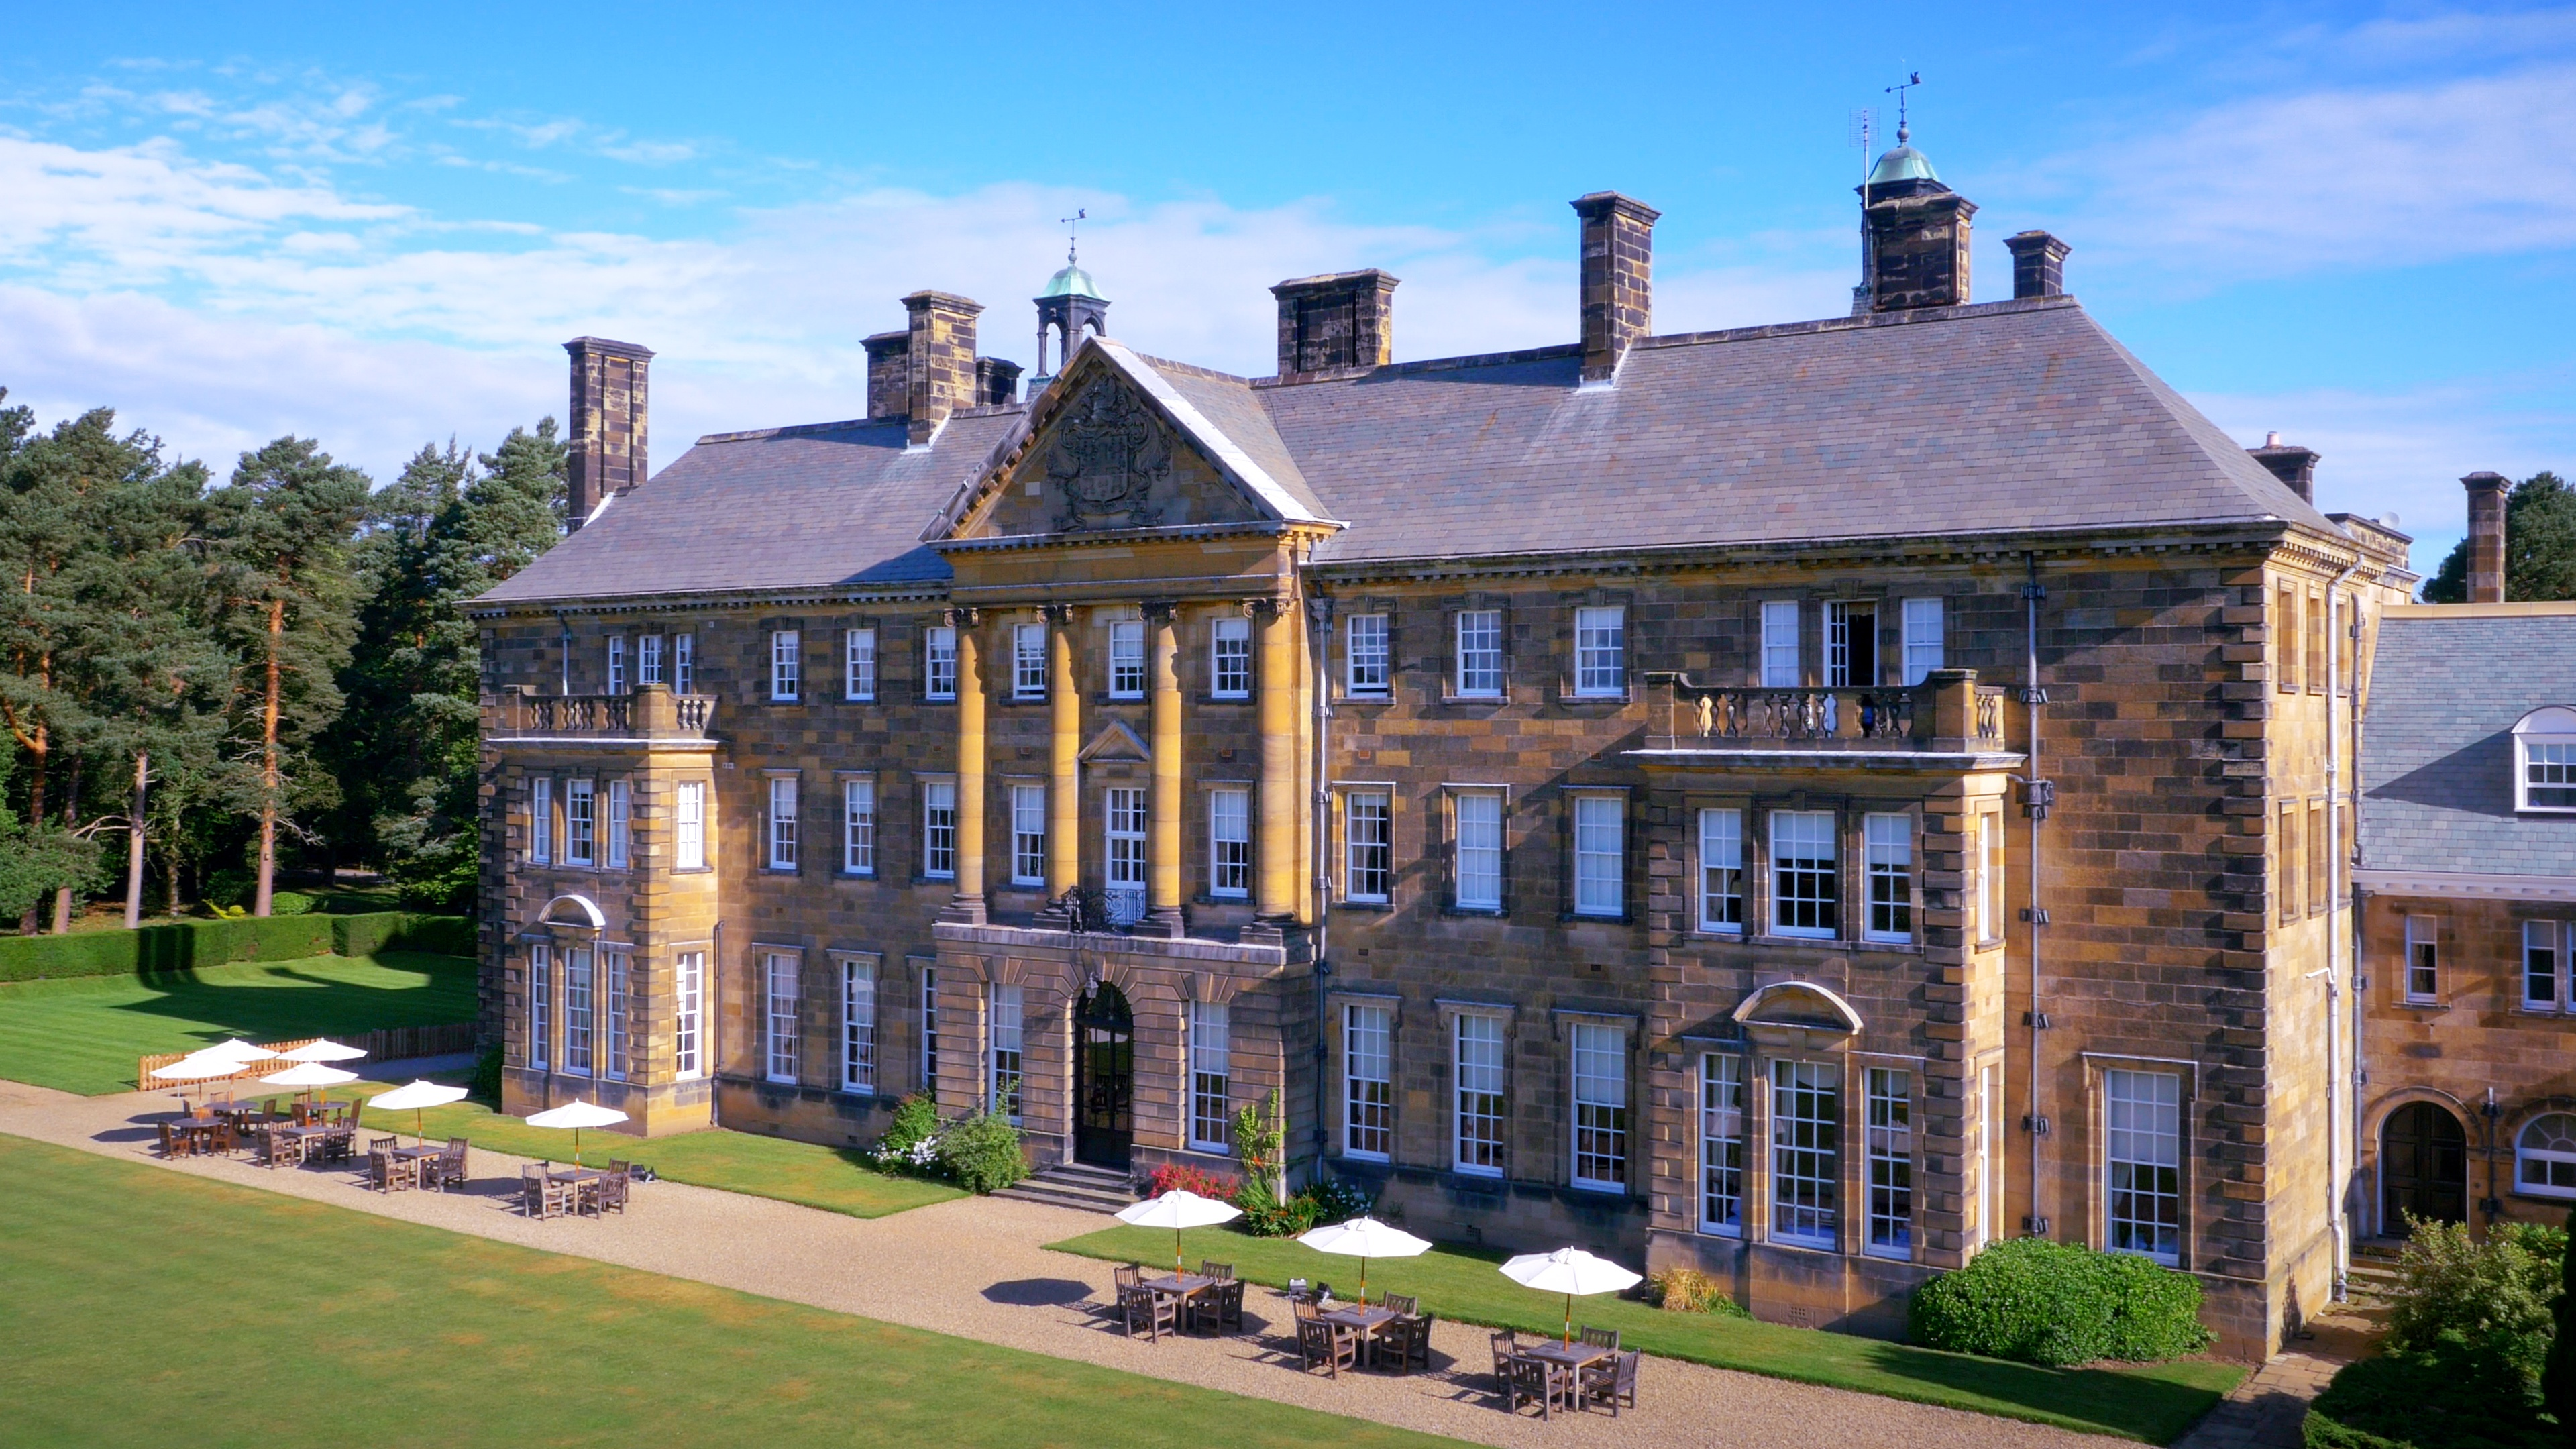 Hotels In York With Disabled Facilities